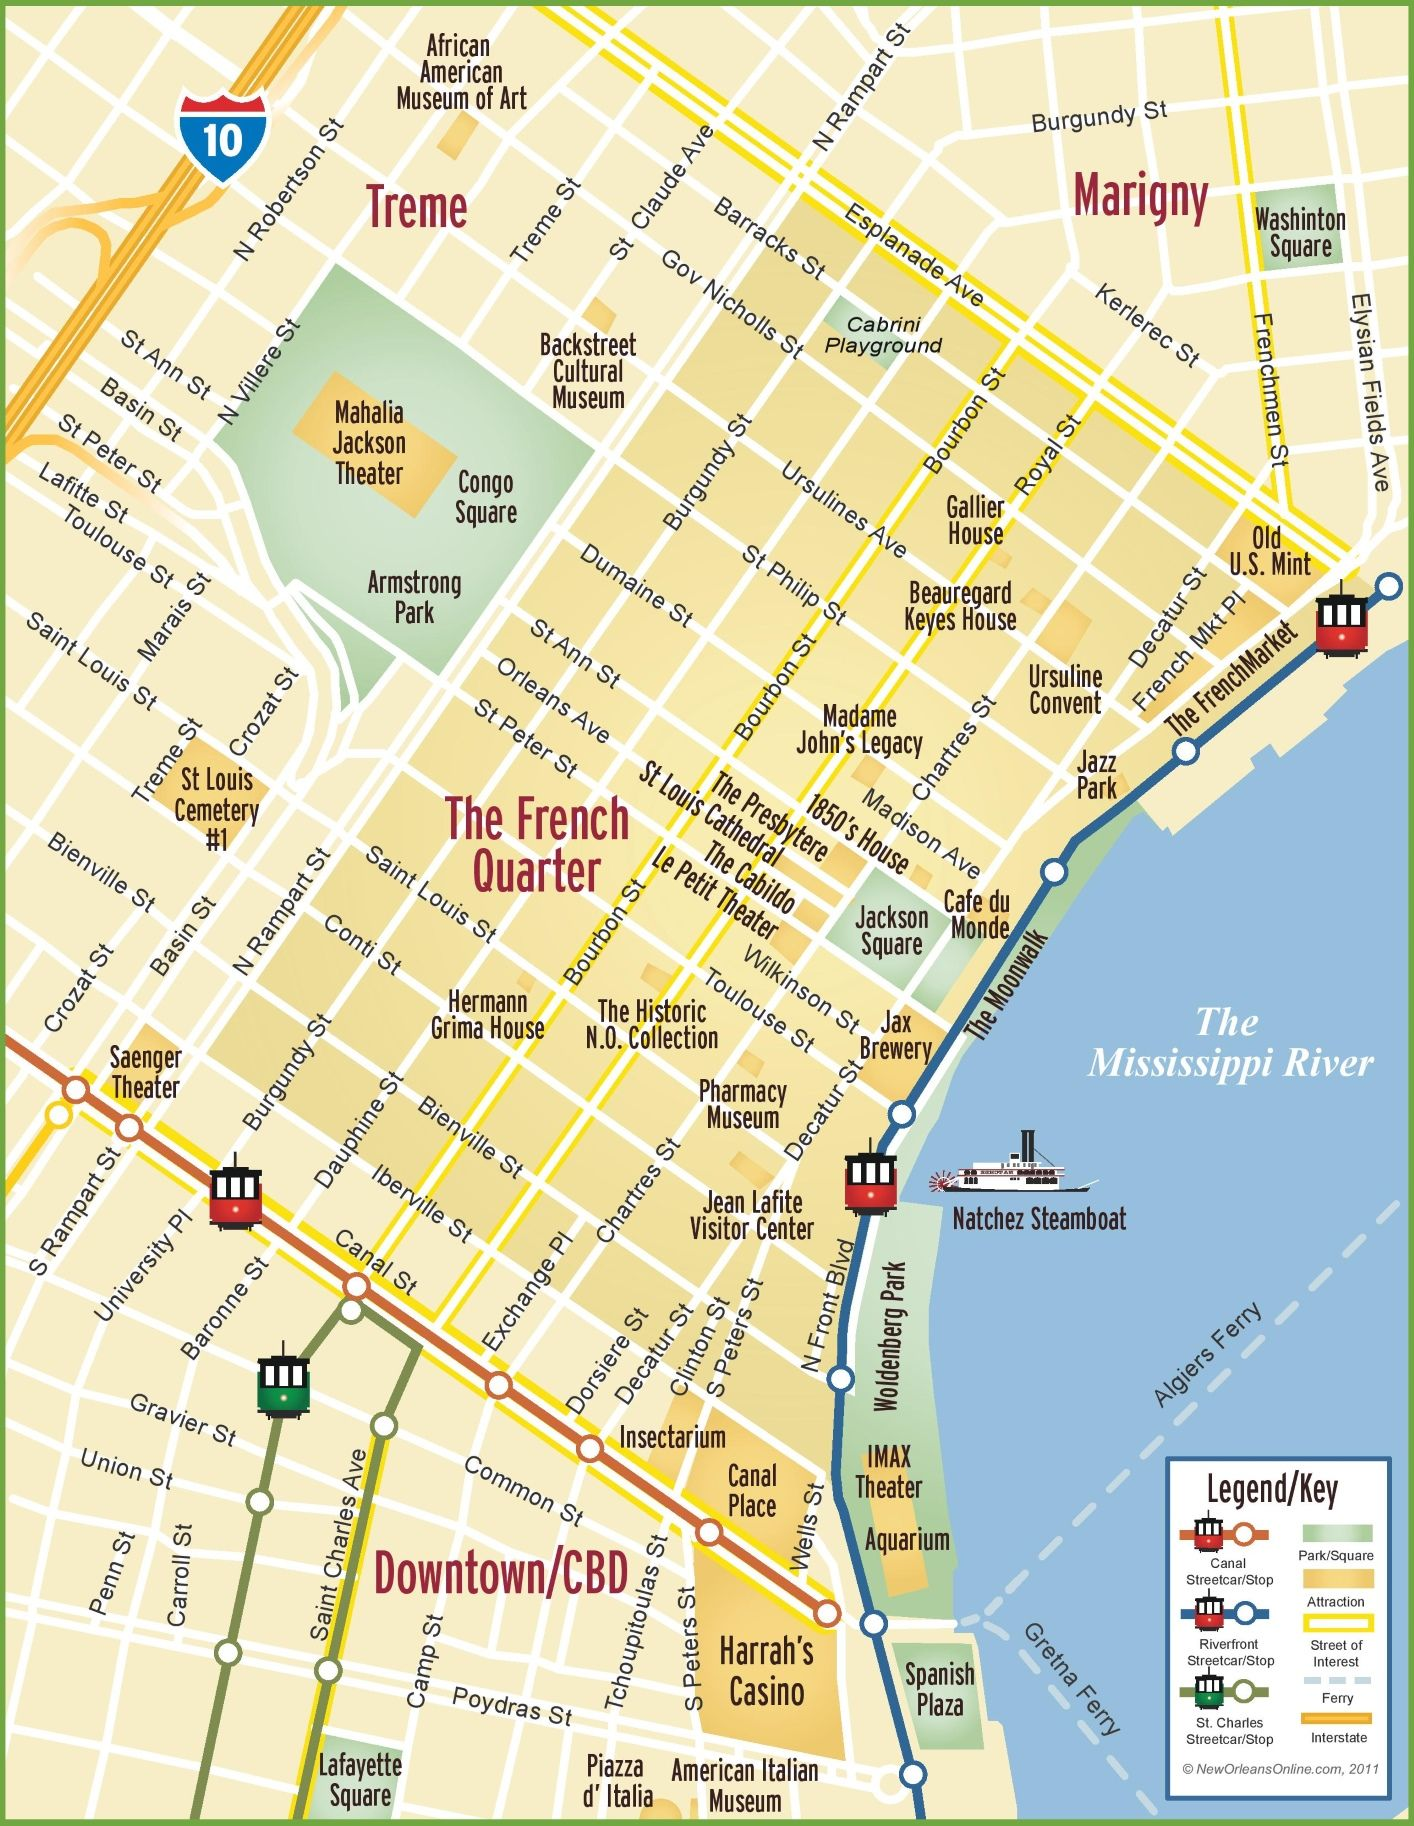 New Orleans French Quarter Tourist Map New Orleans French Quarter map | New Orleans in 2019 | New orleans